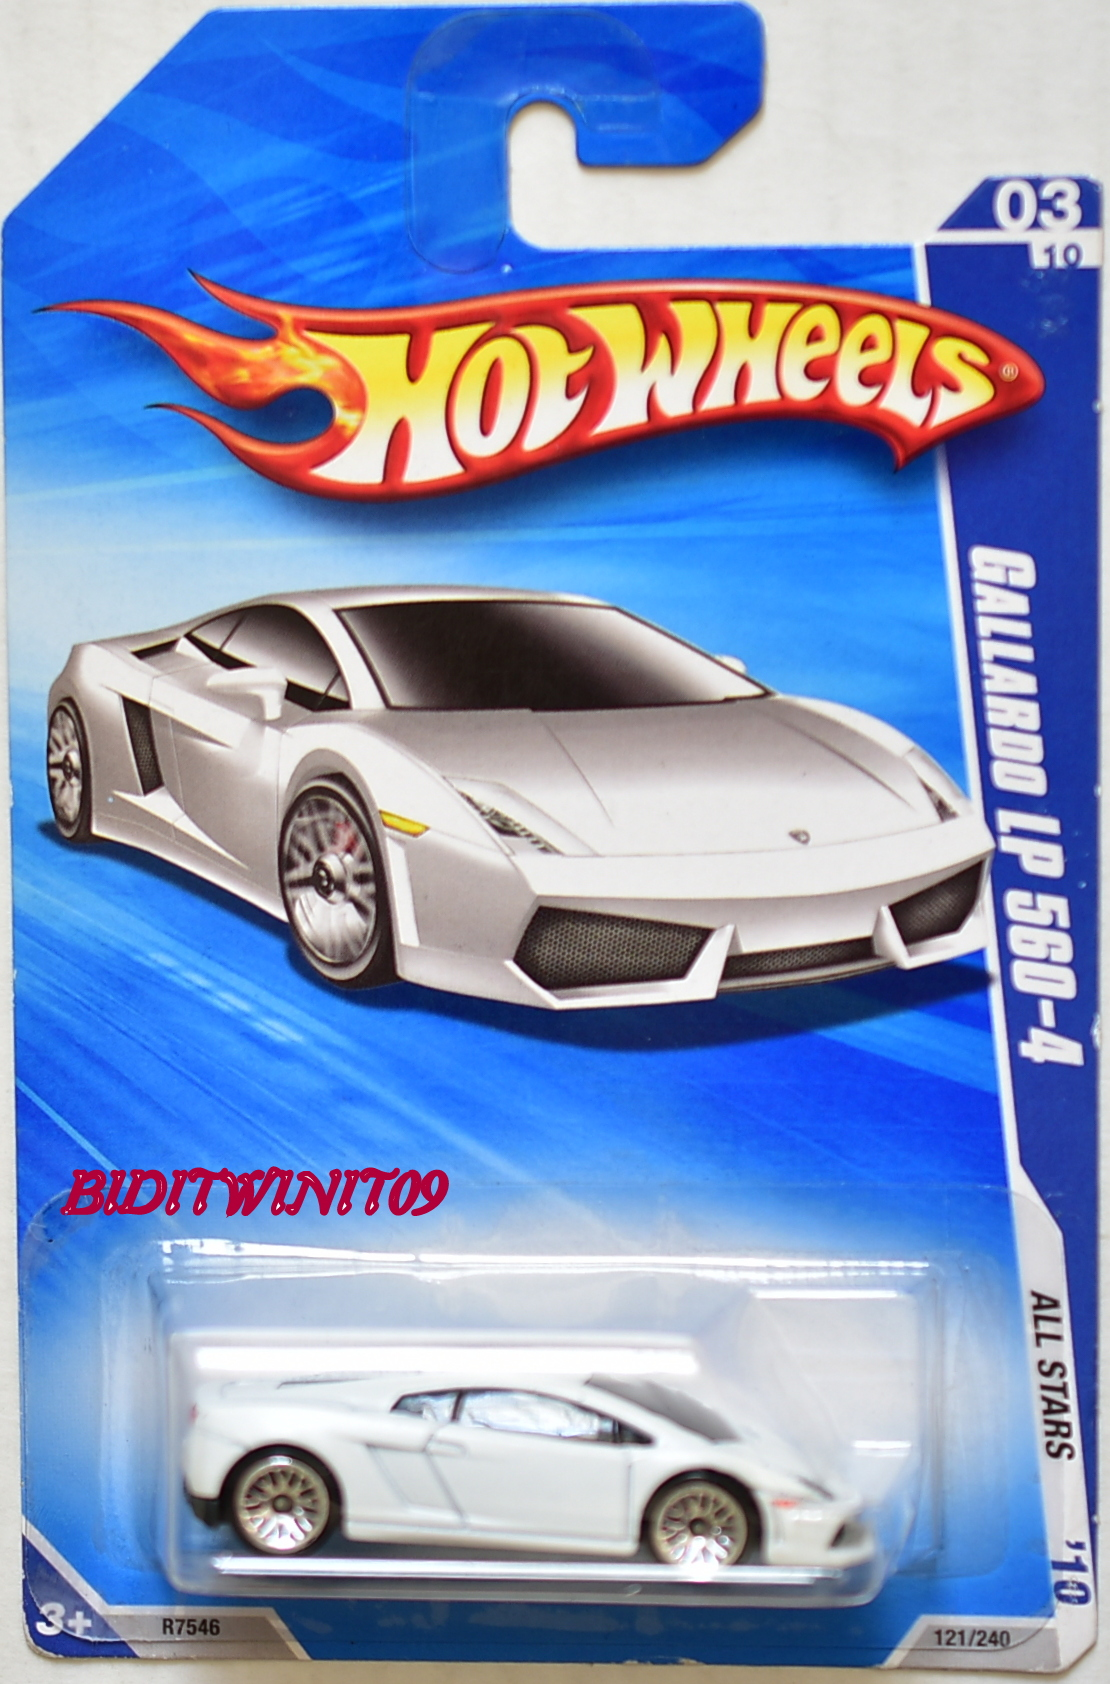 HOT WHEELS 2010 ALL STARS GALLARDO LP 560-4 #03/10 WHITE E+